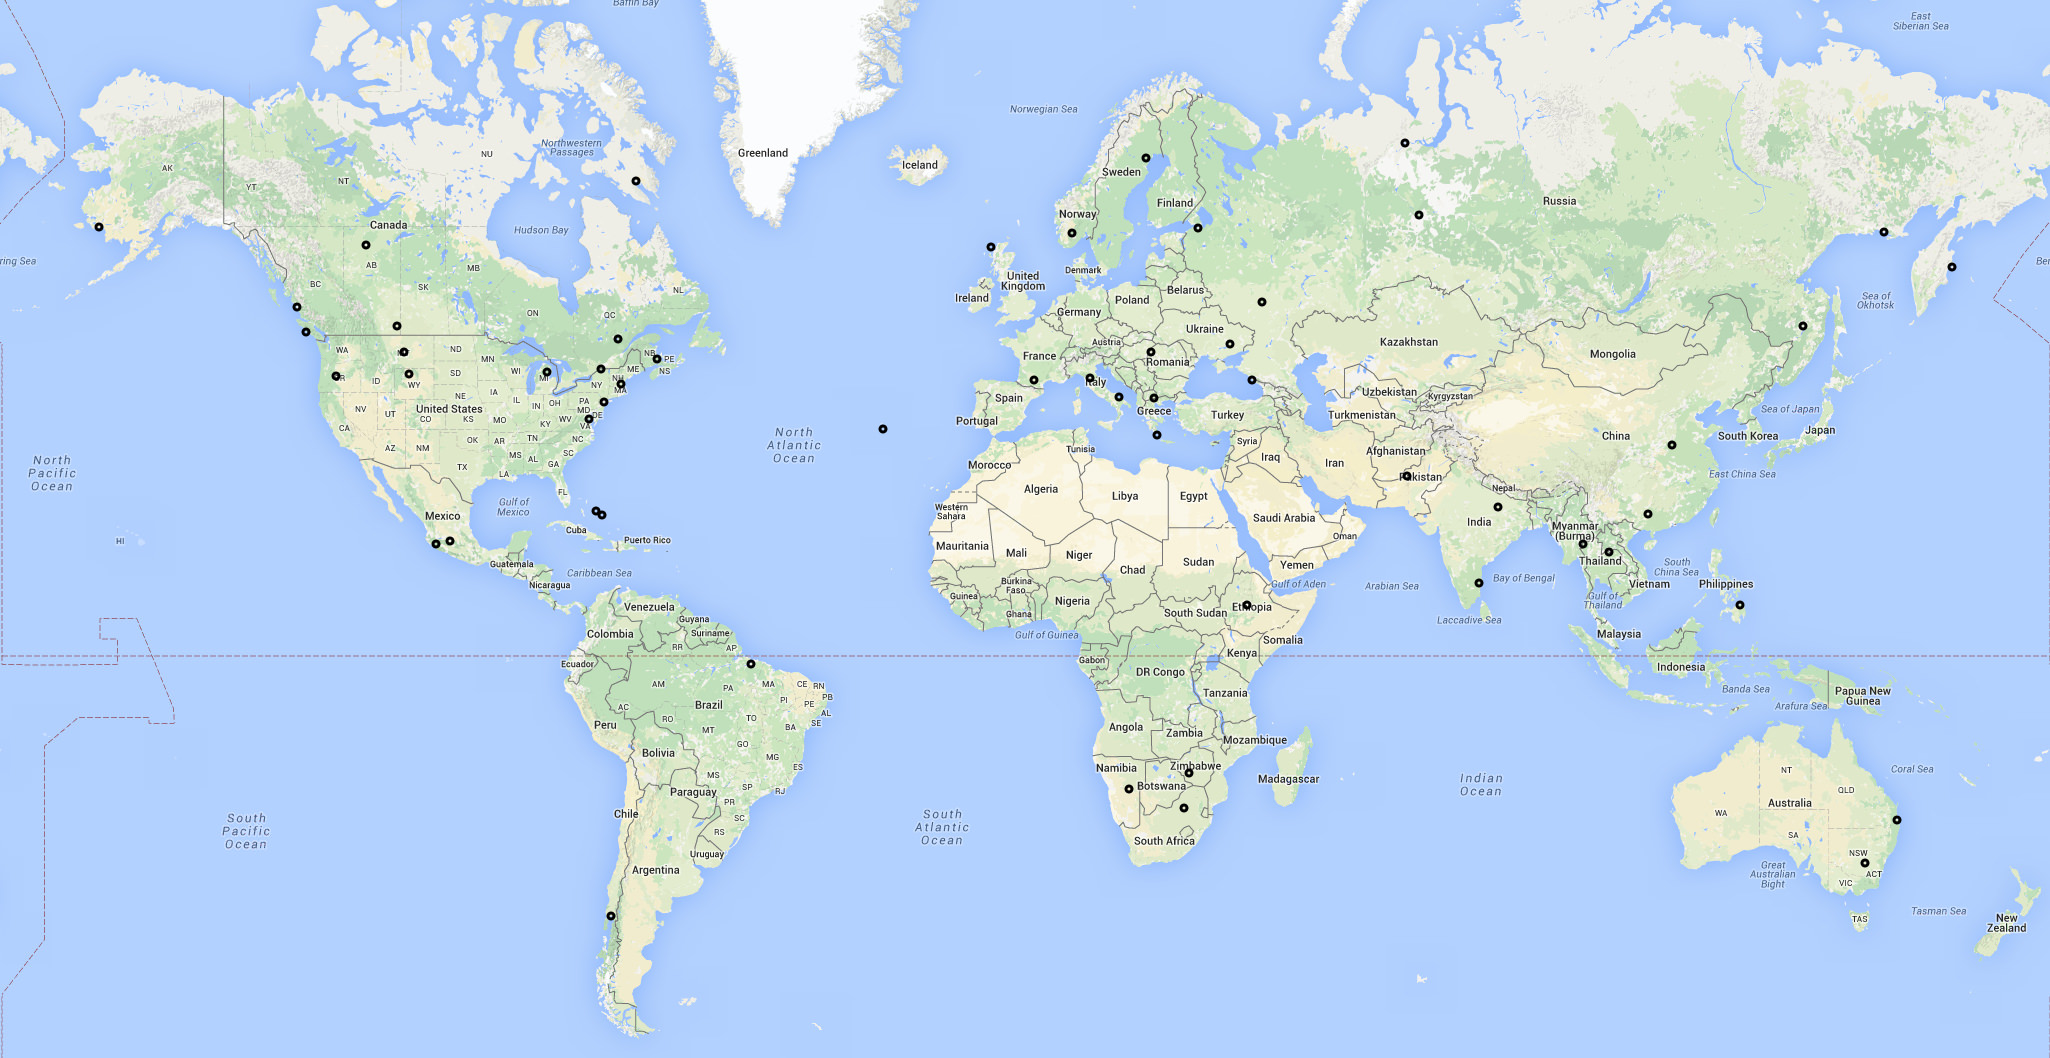 Map of New Flightradar24 receivers activated in the first two weeks of January 2016.